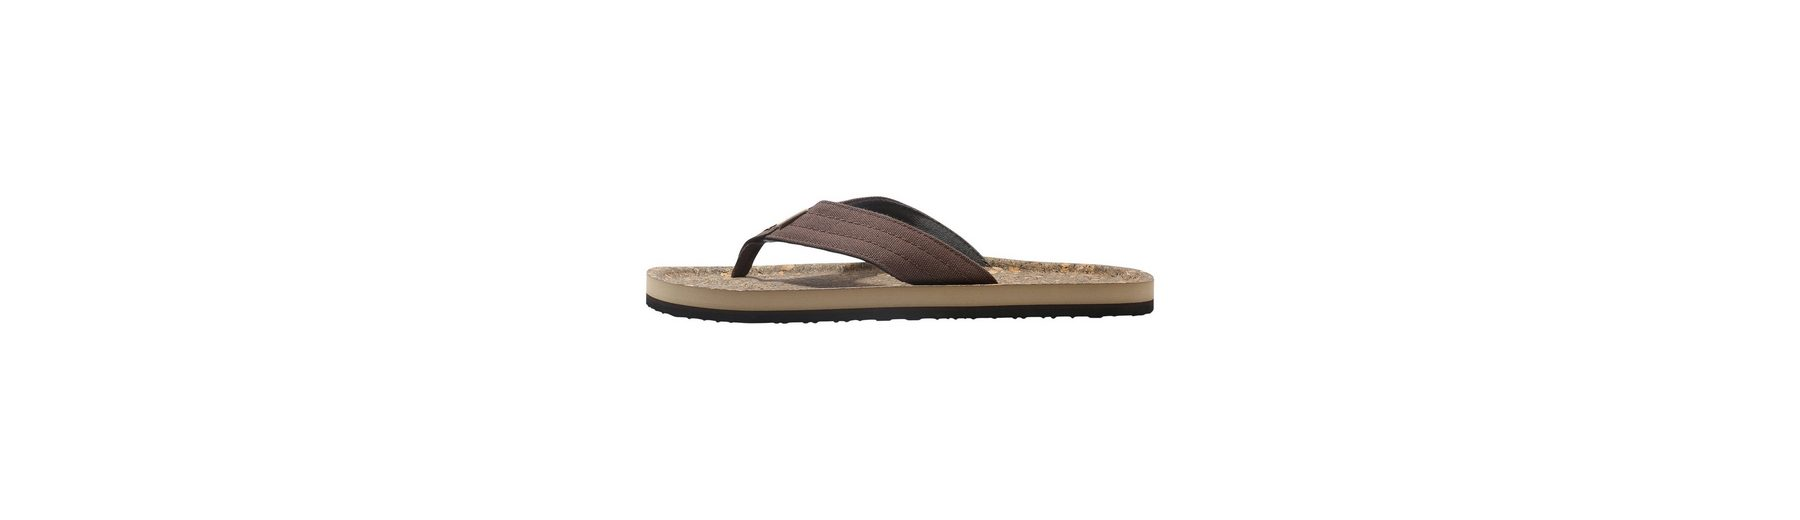 O'Neill Flip flop Chad Structure